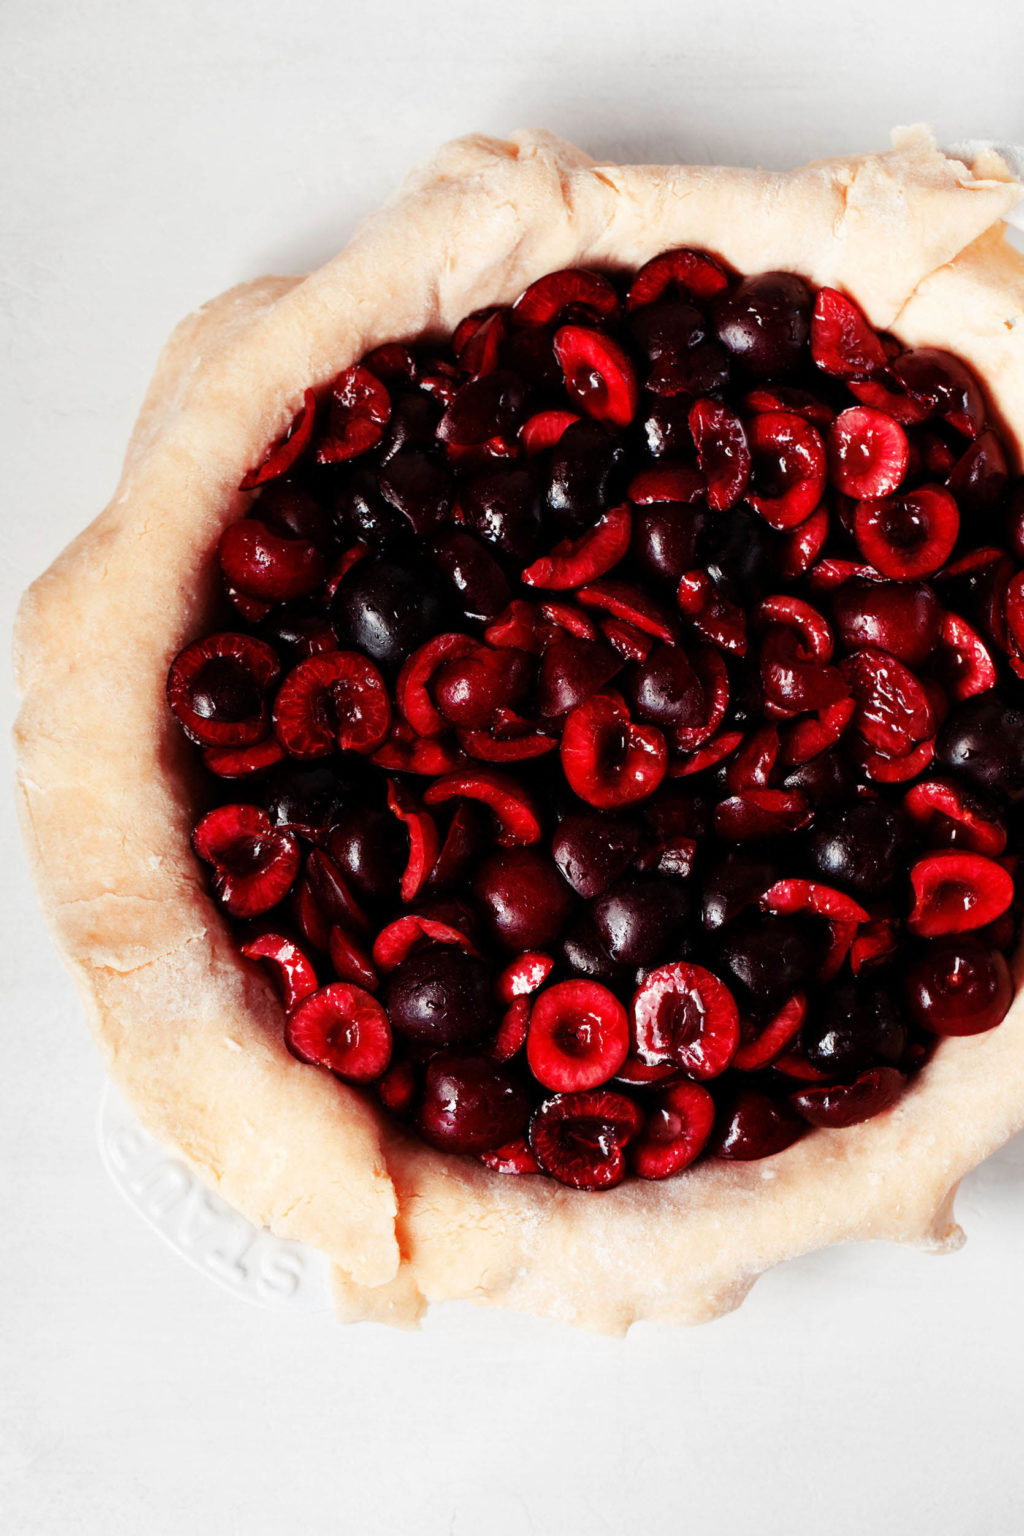 Dark, sweet cherries have been piled into a crust-lined pie baking dish.